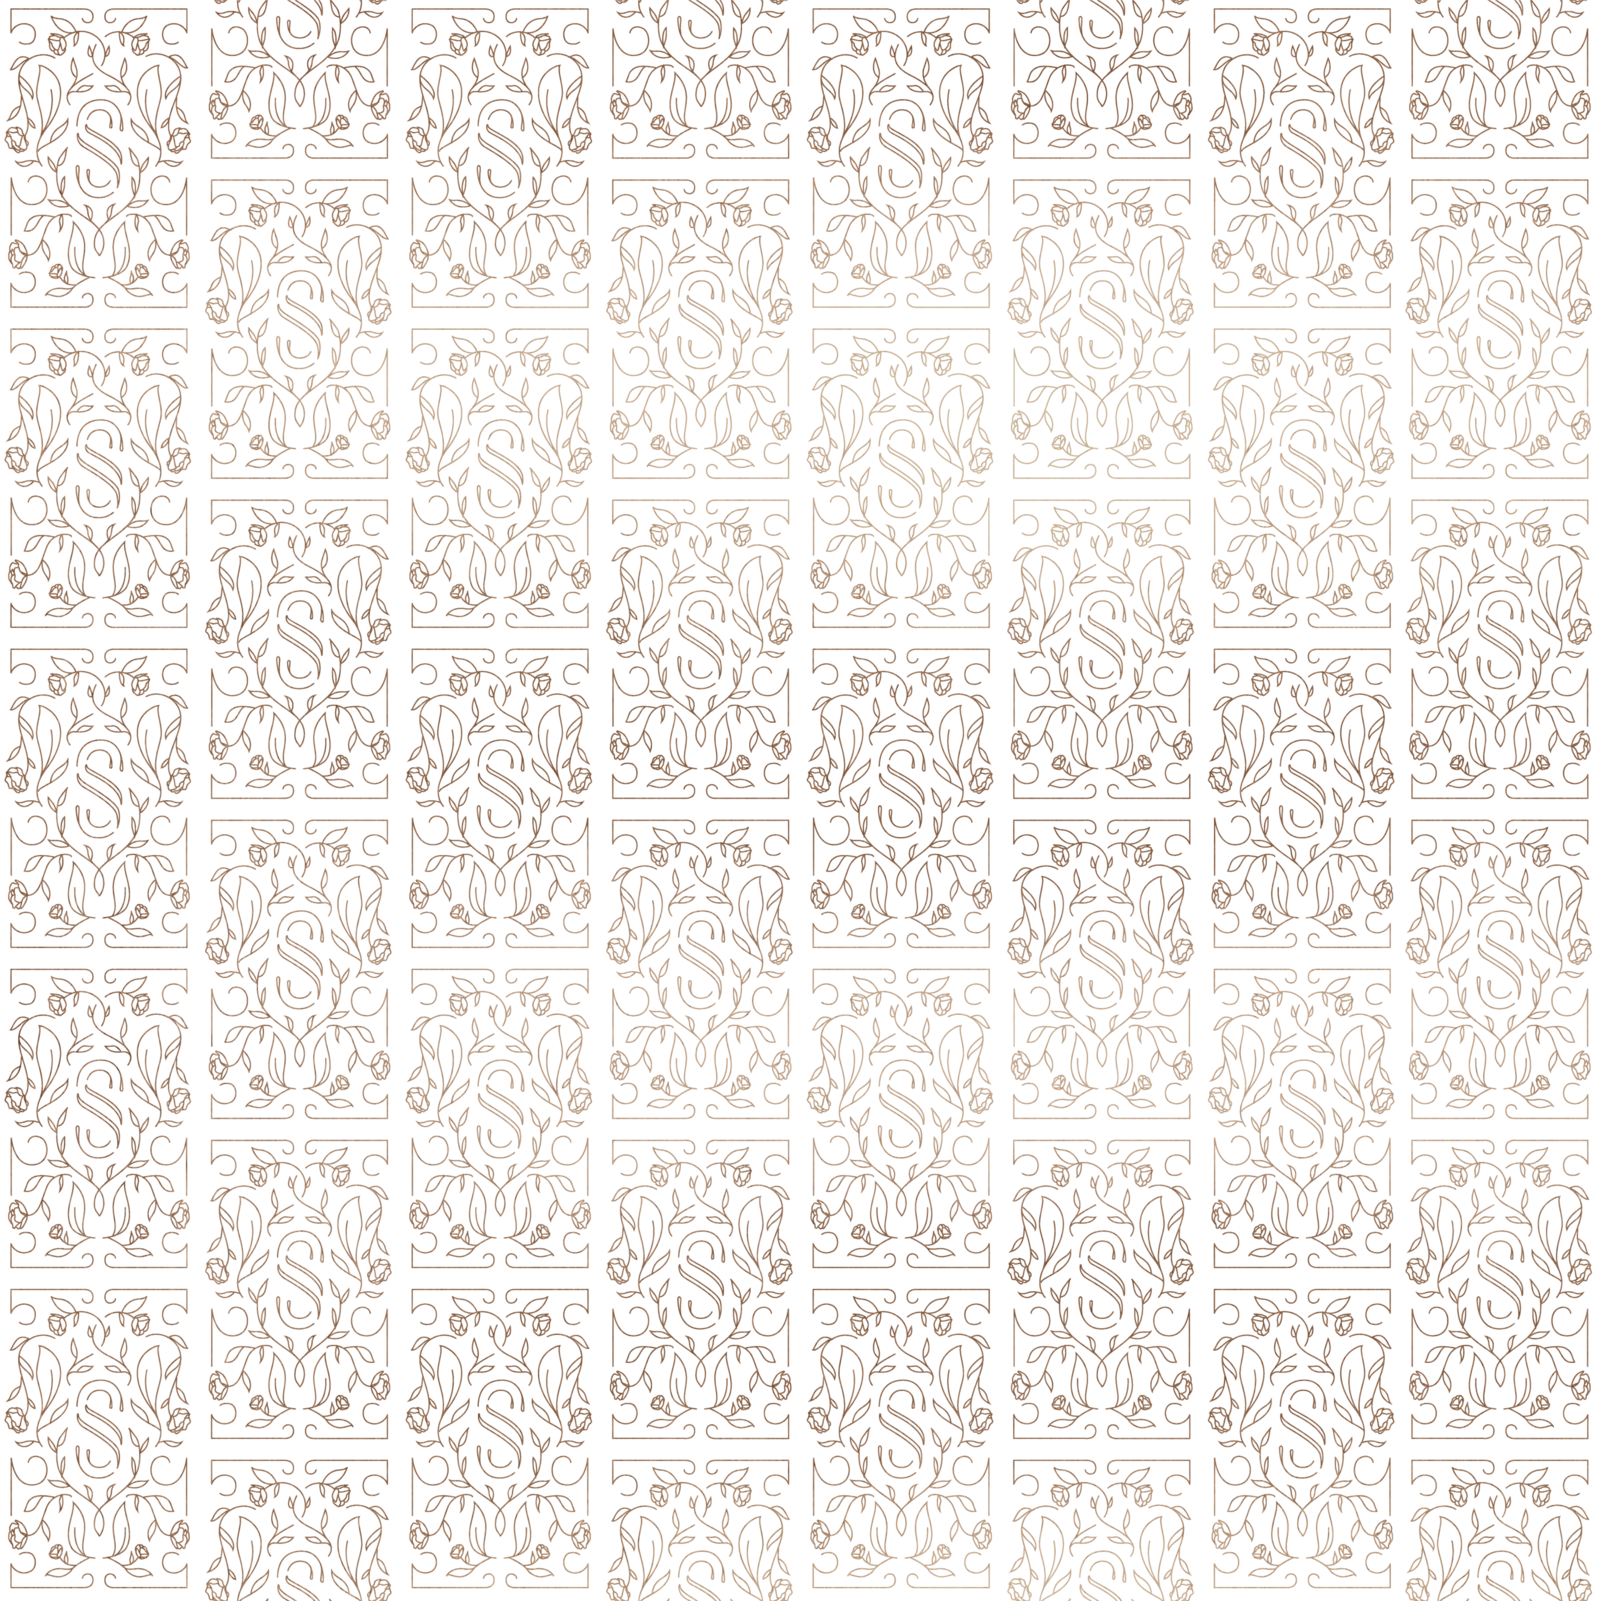 TSOS-IllustrationPattern-Bronze-Transparent